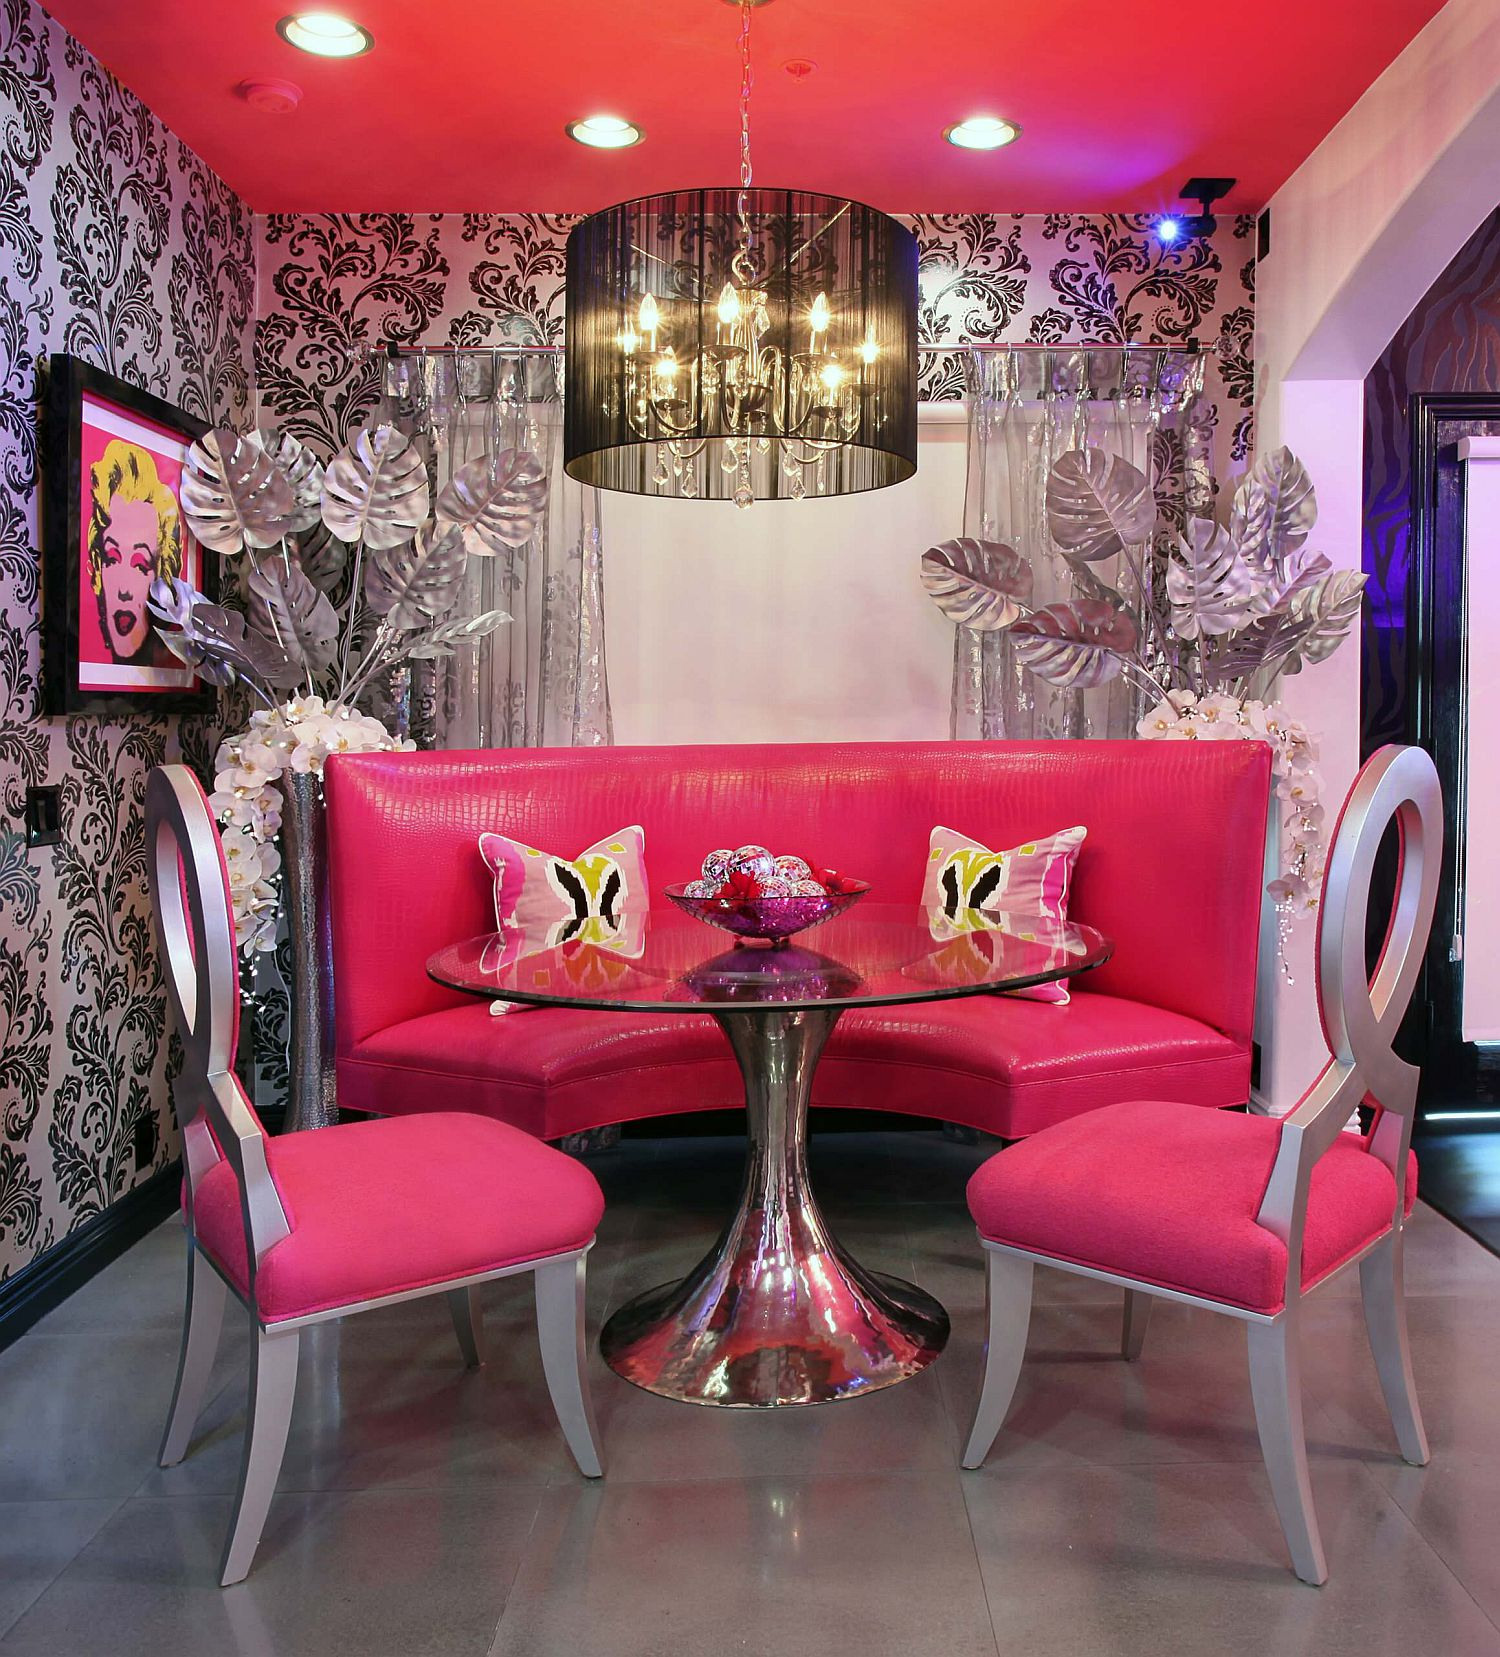 It is ceiling that ushers pink into the unique dining room that also fetaures Breast Cancer Awarness Chairs